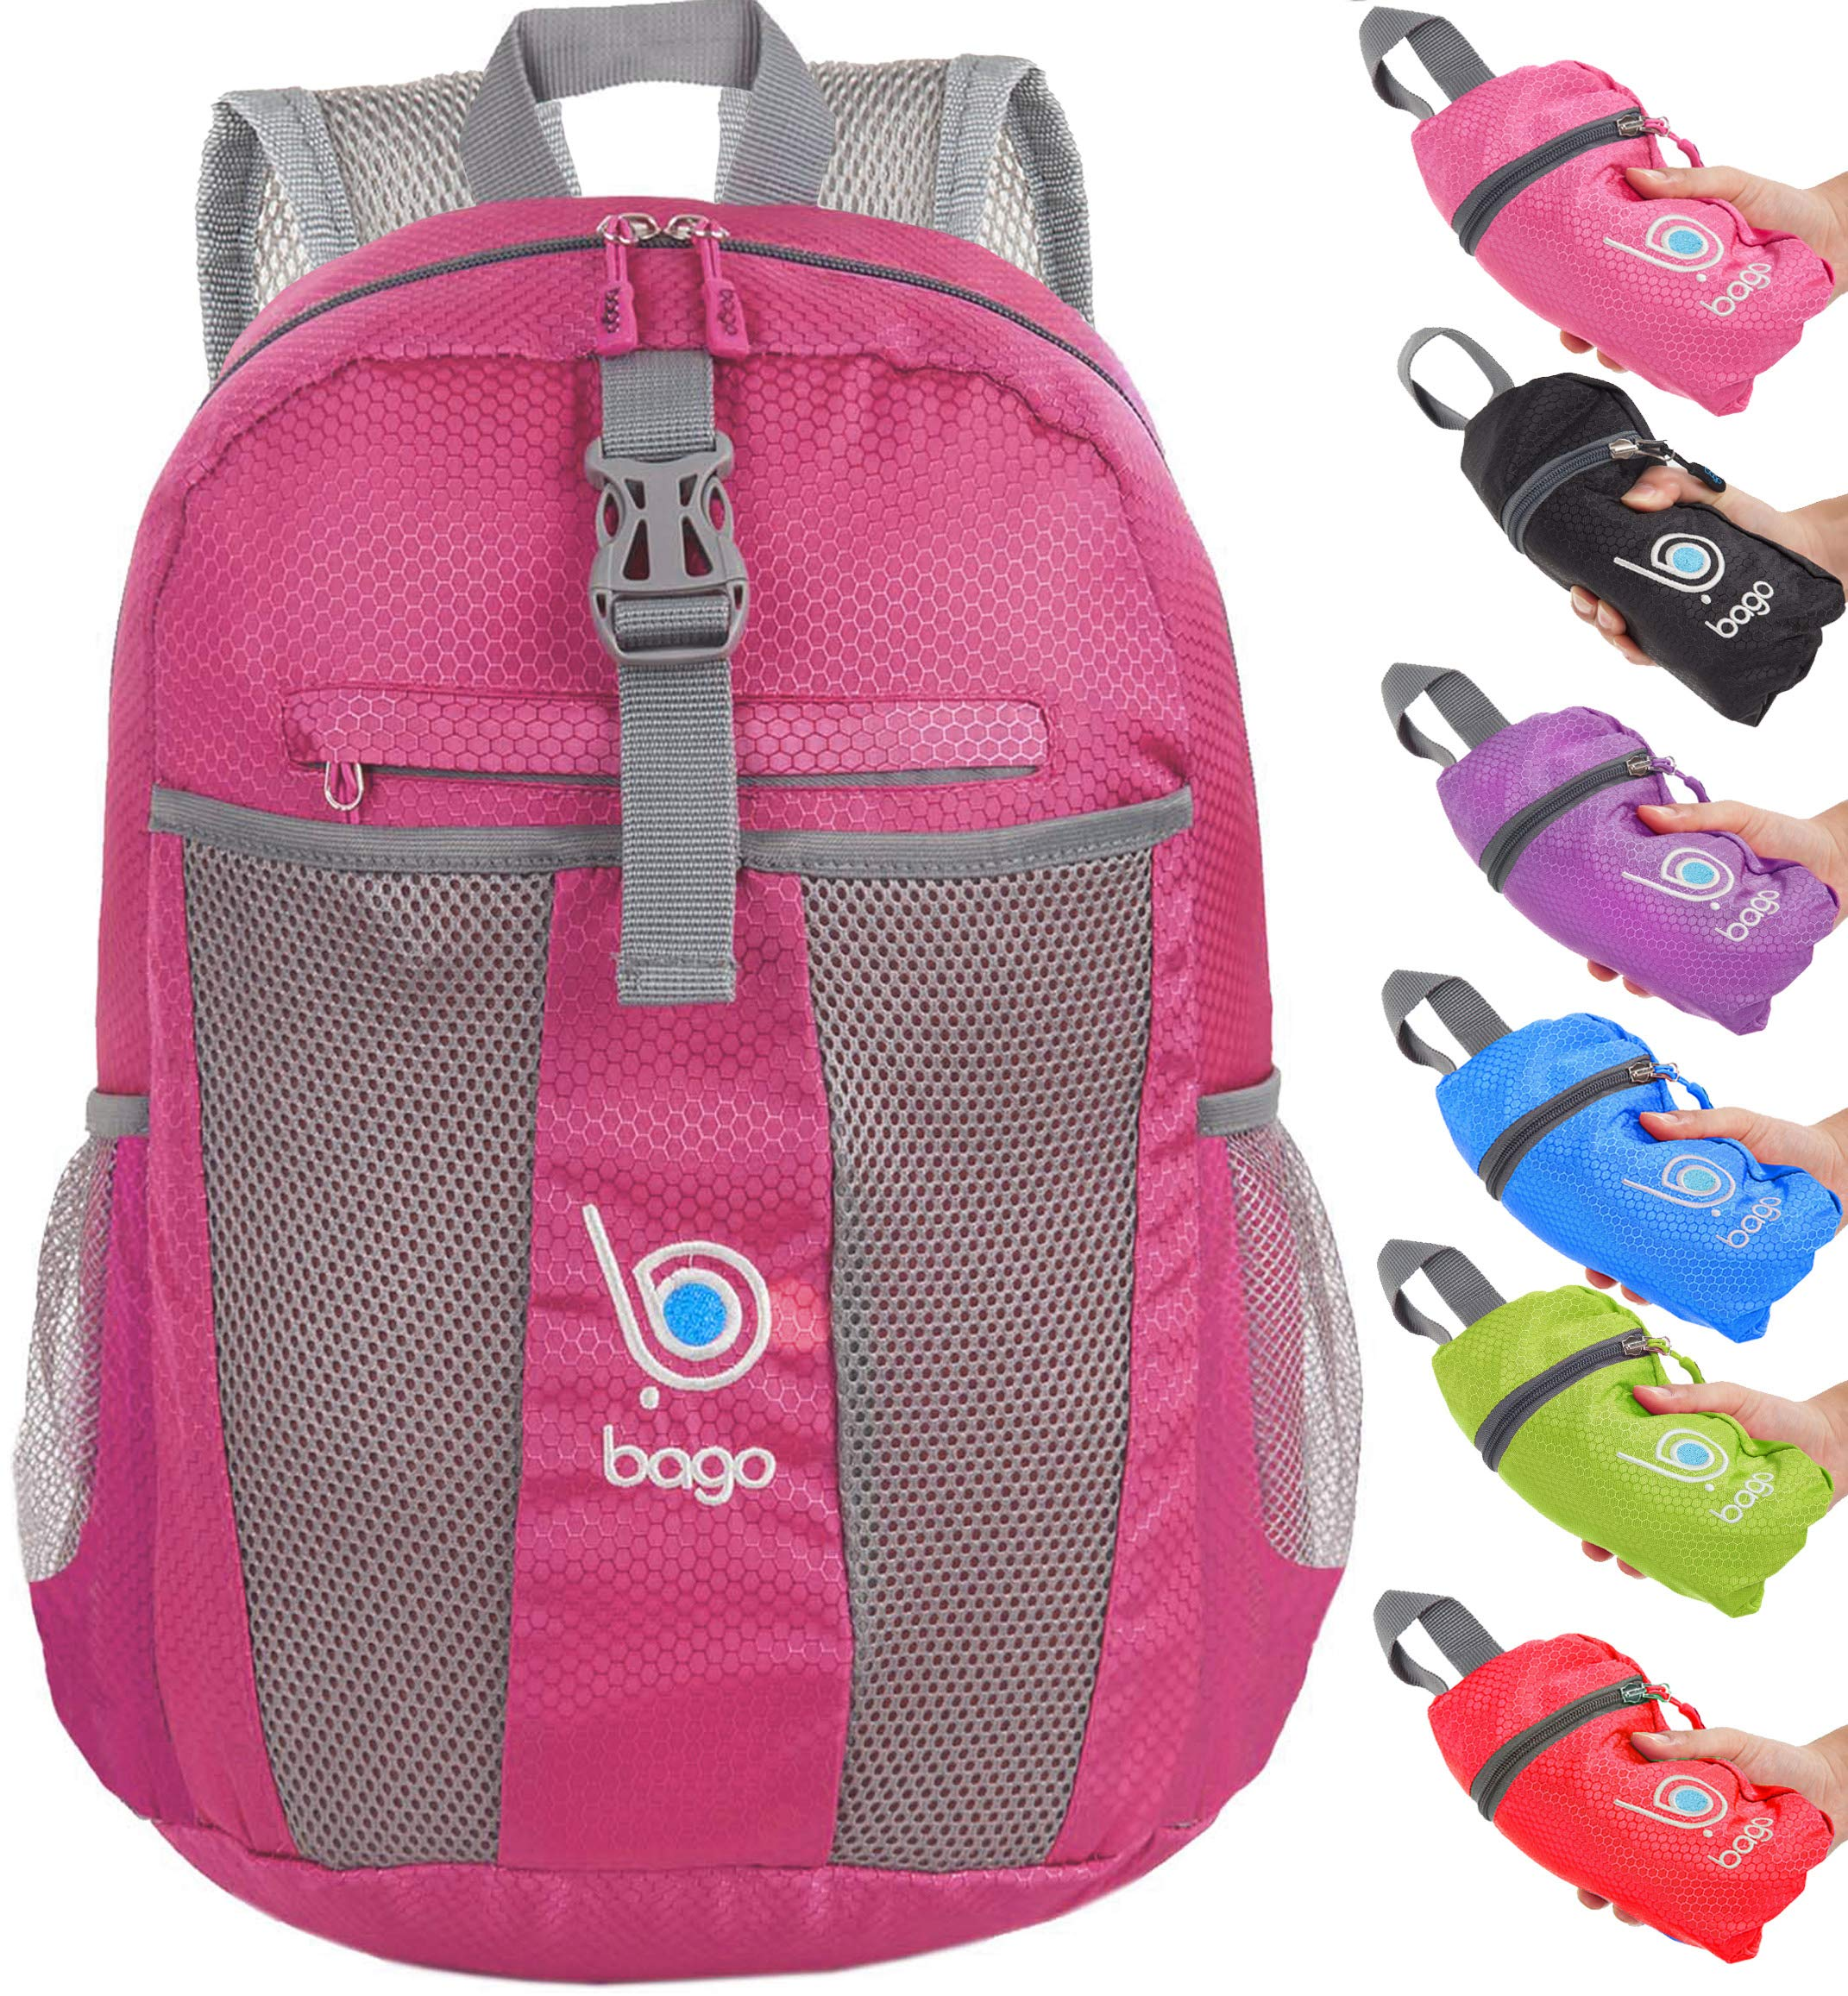 Bago Foldable Rucksack for Women and Men. Lightweight Water Resistant  Packable Backpack 19dd9d8e75b4f